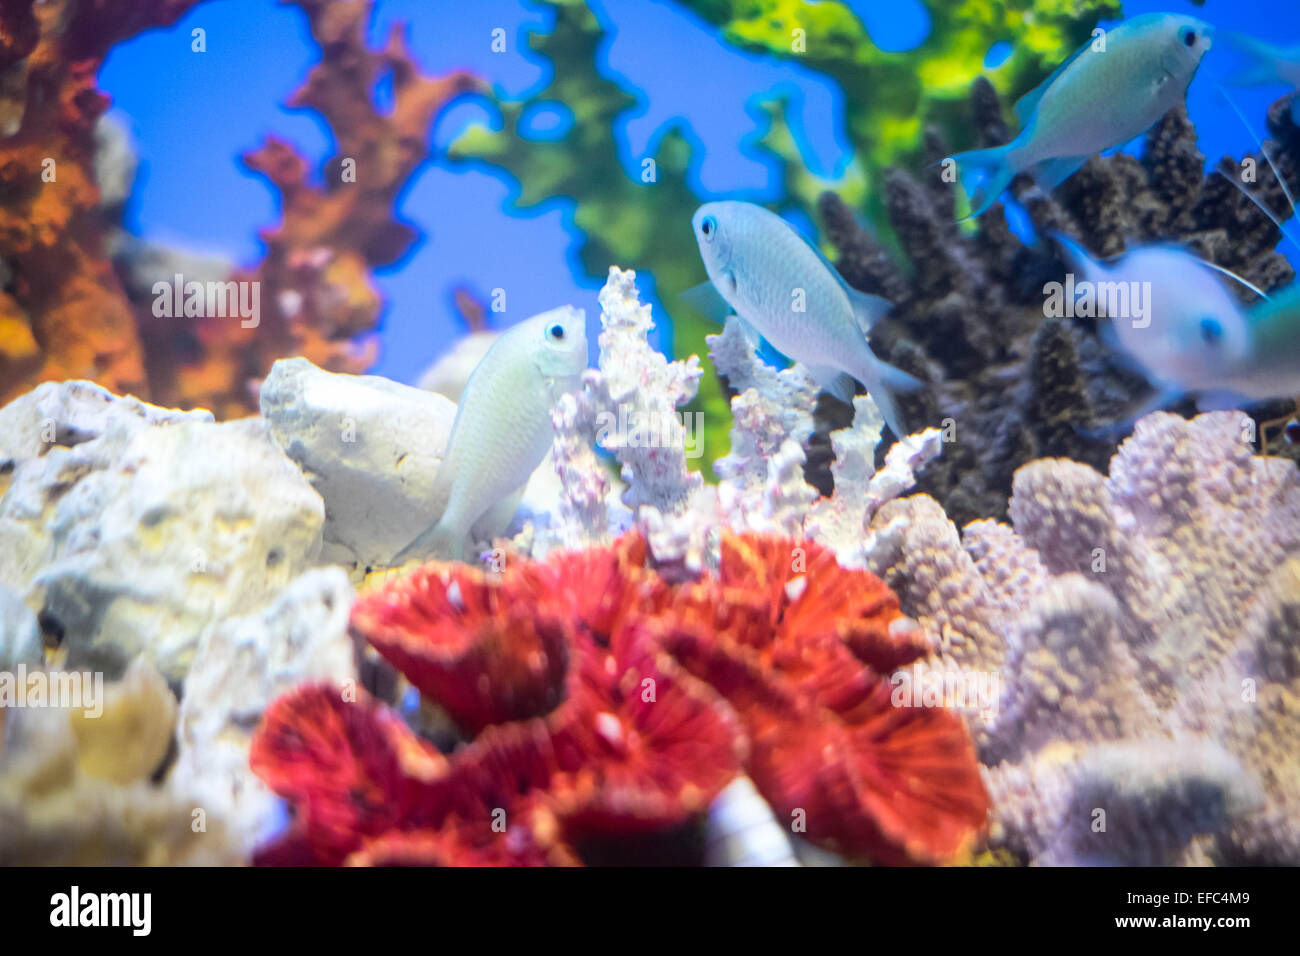 Colourful Fish Swimming Stock Photos & Colourful Fish Swimming Stock ...